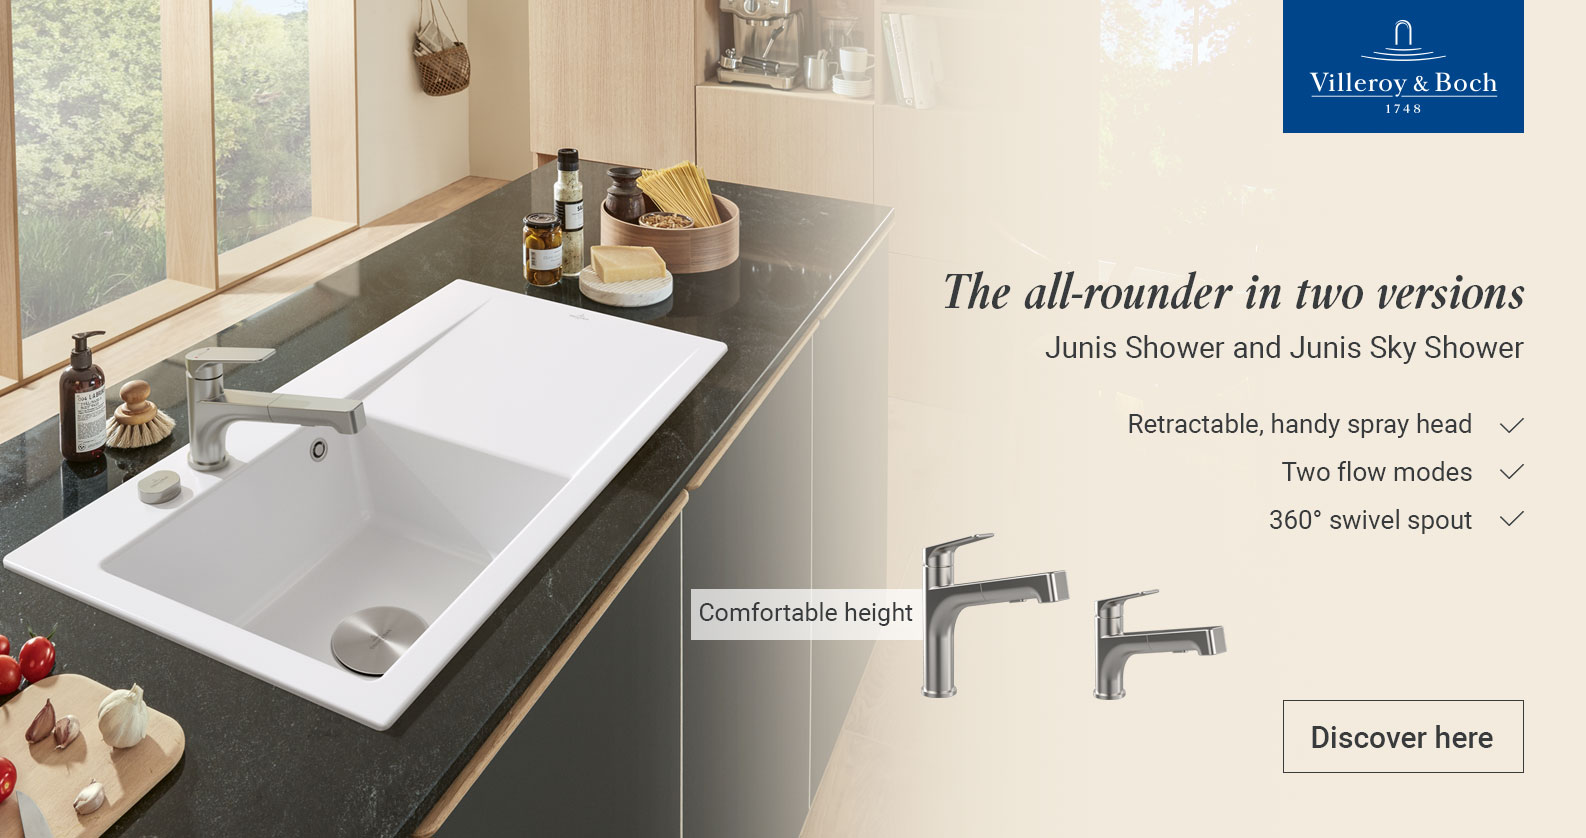 Discover Villeroy & Boch Kitchen Taps at xTWOstore